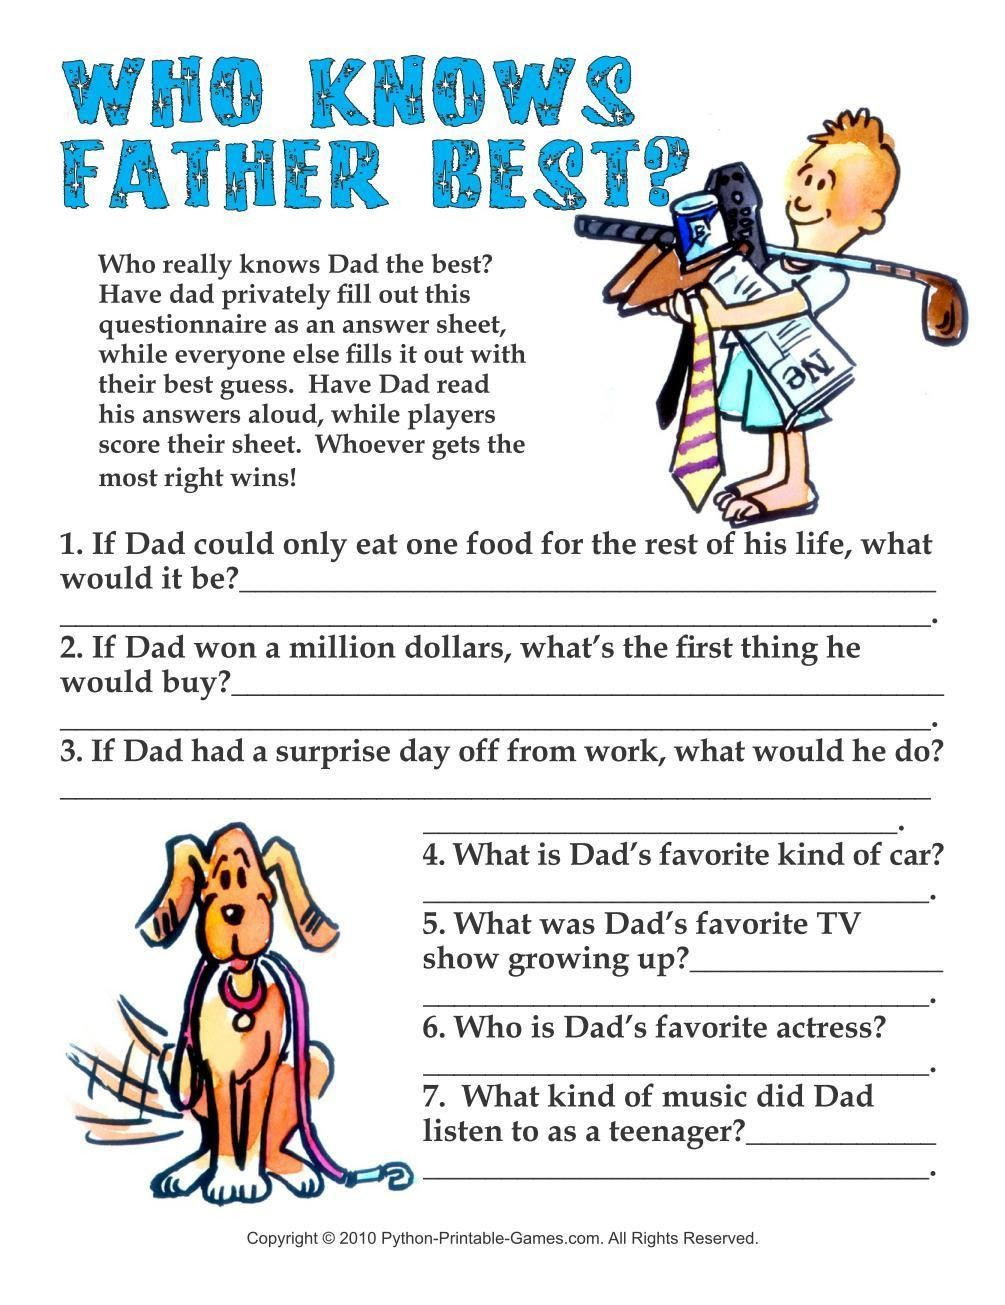 Father's Day: Who Knows Daddy Best?